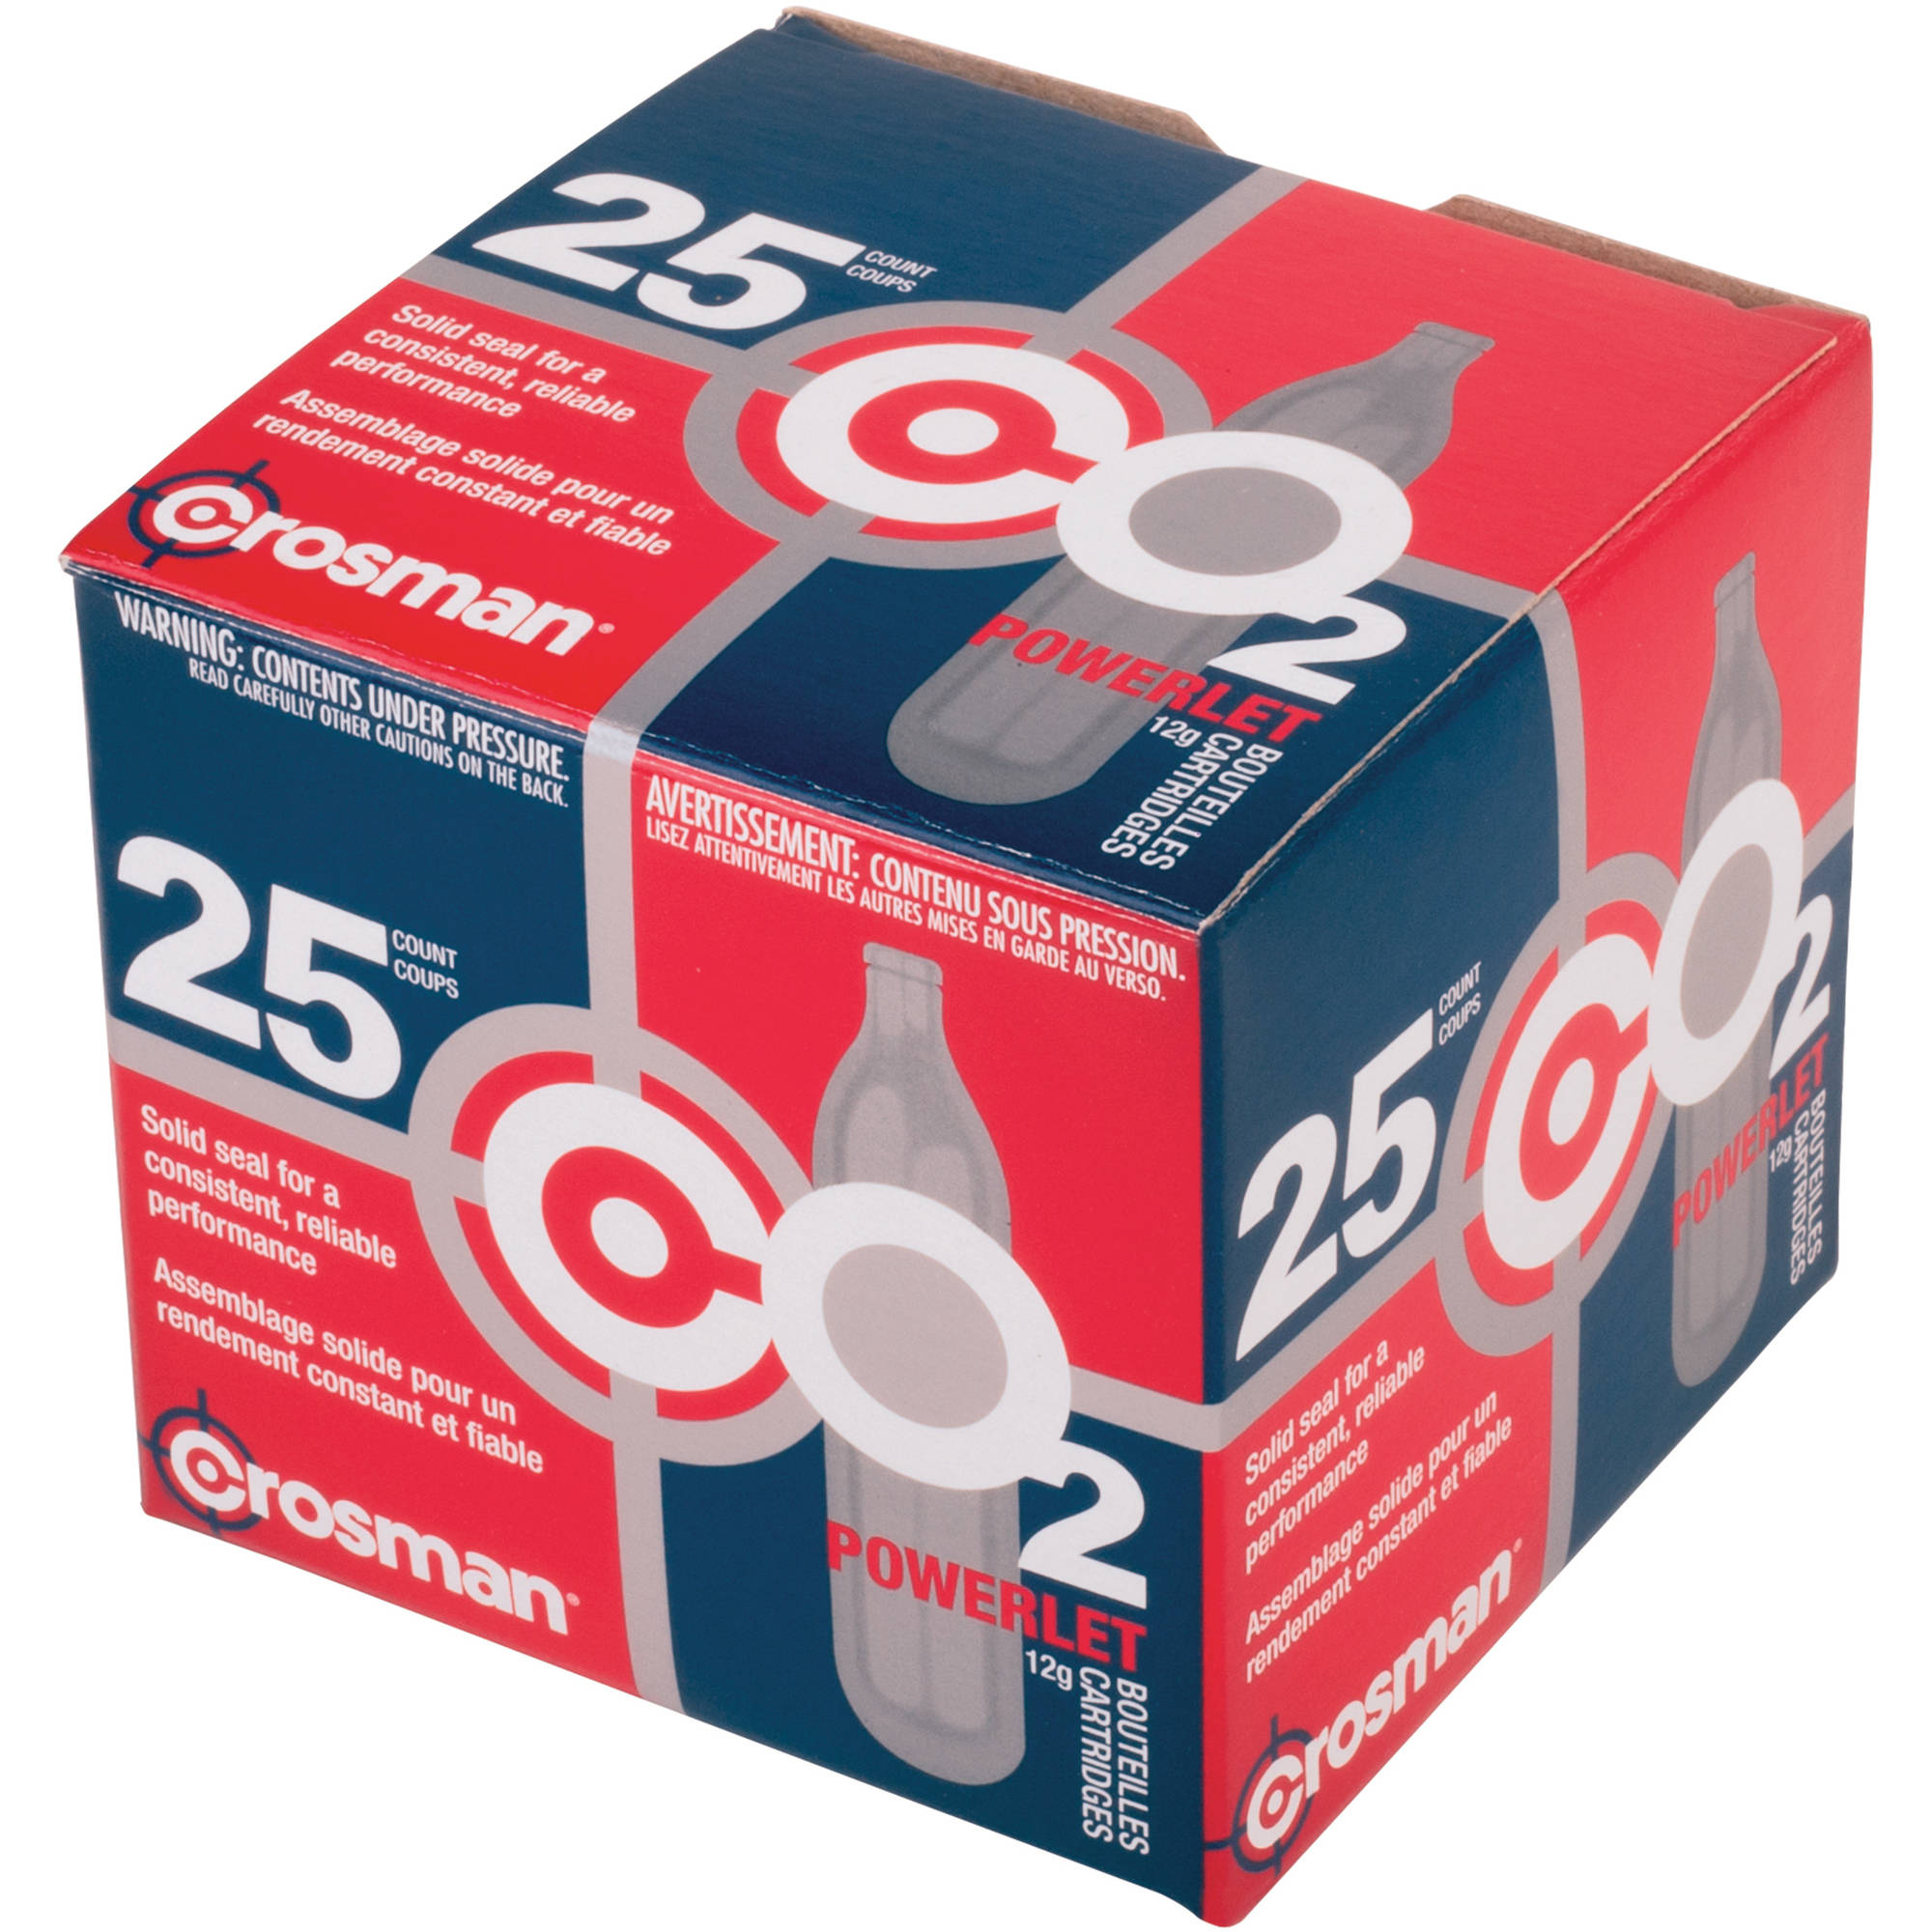 Crosman 12-Gram CO2 Powerlets, 25ct